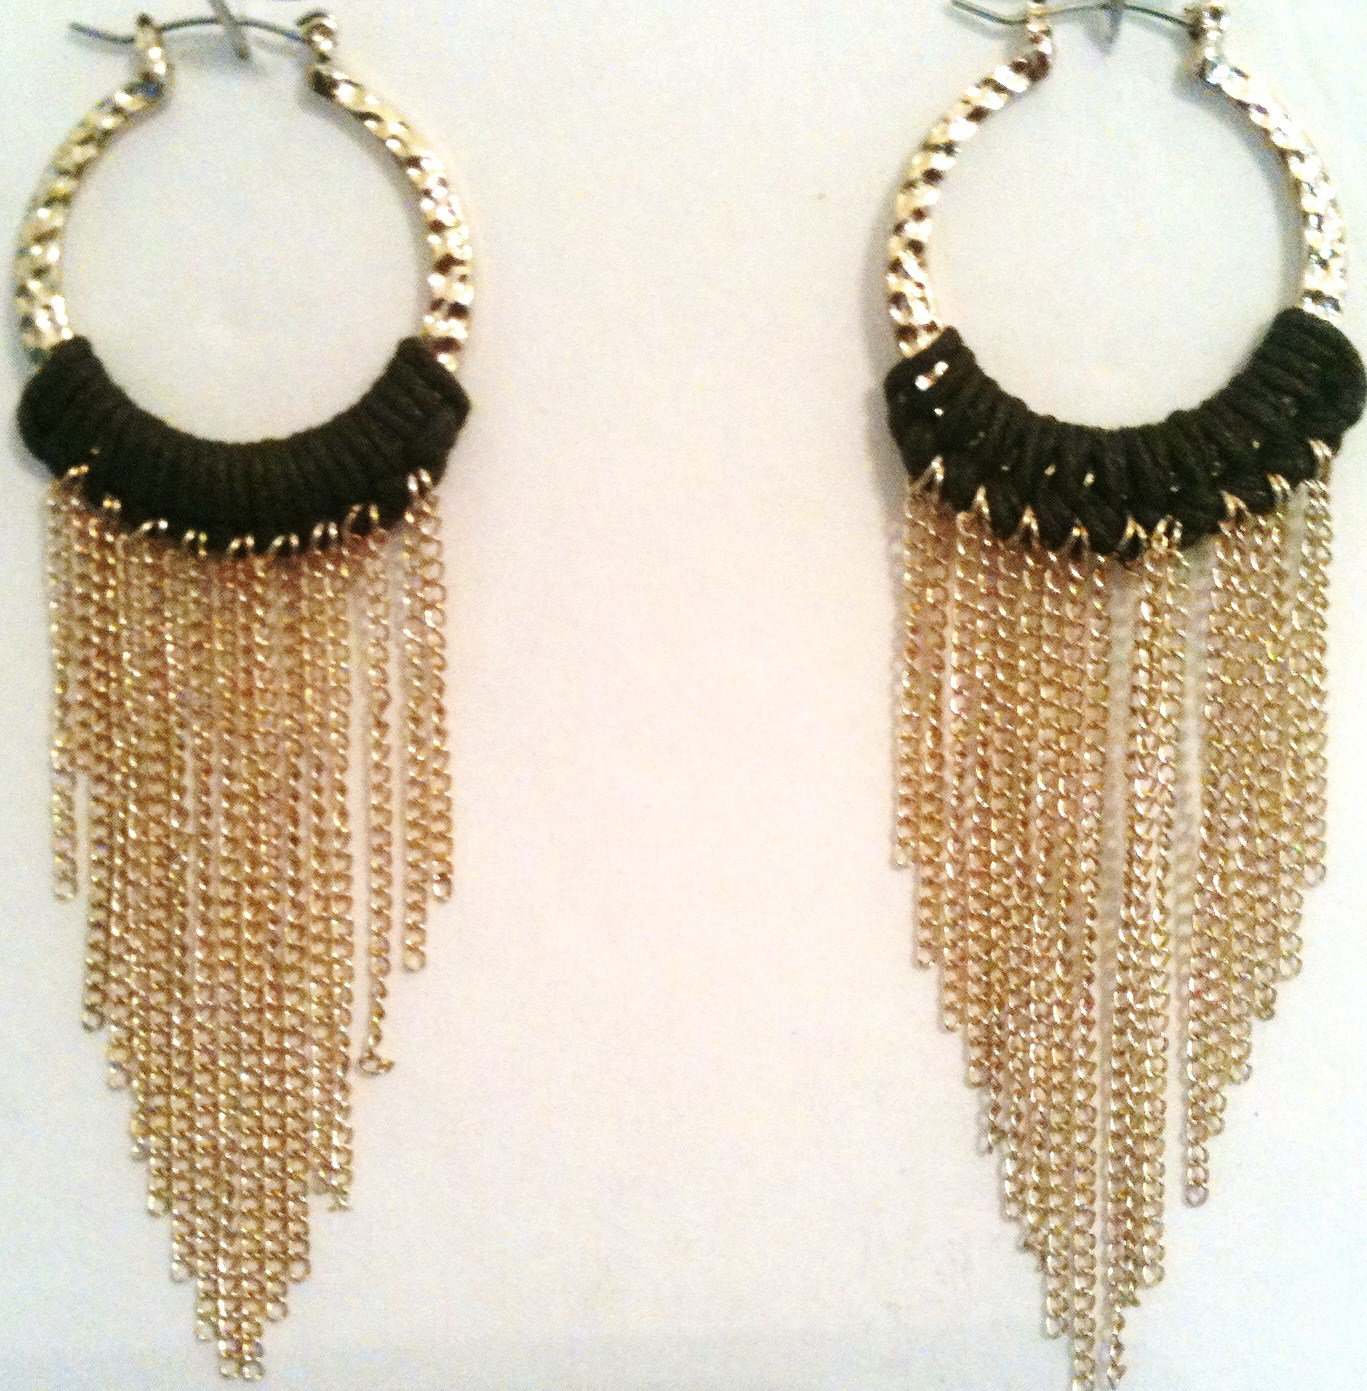 GOLD AND BROWN EARRINGS (NEW)